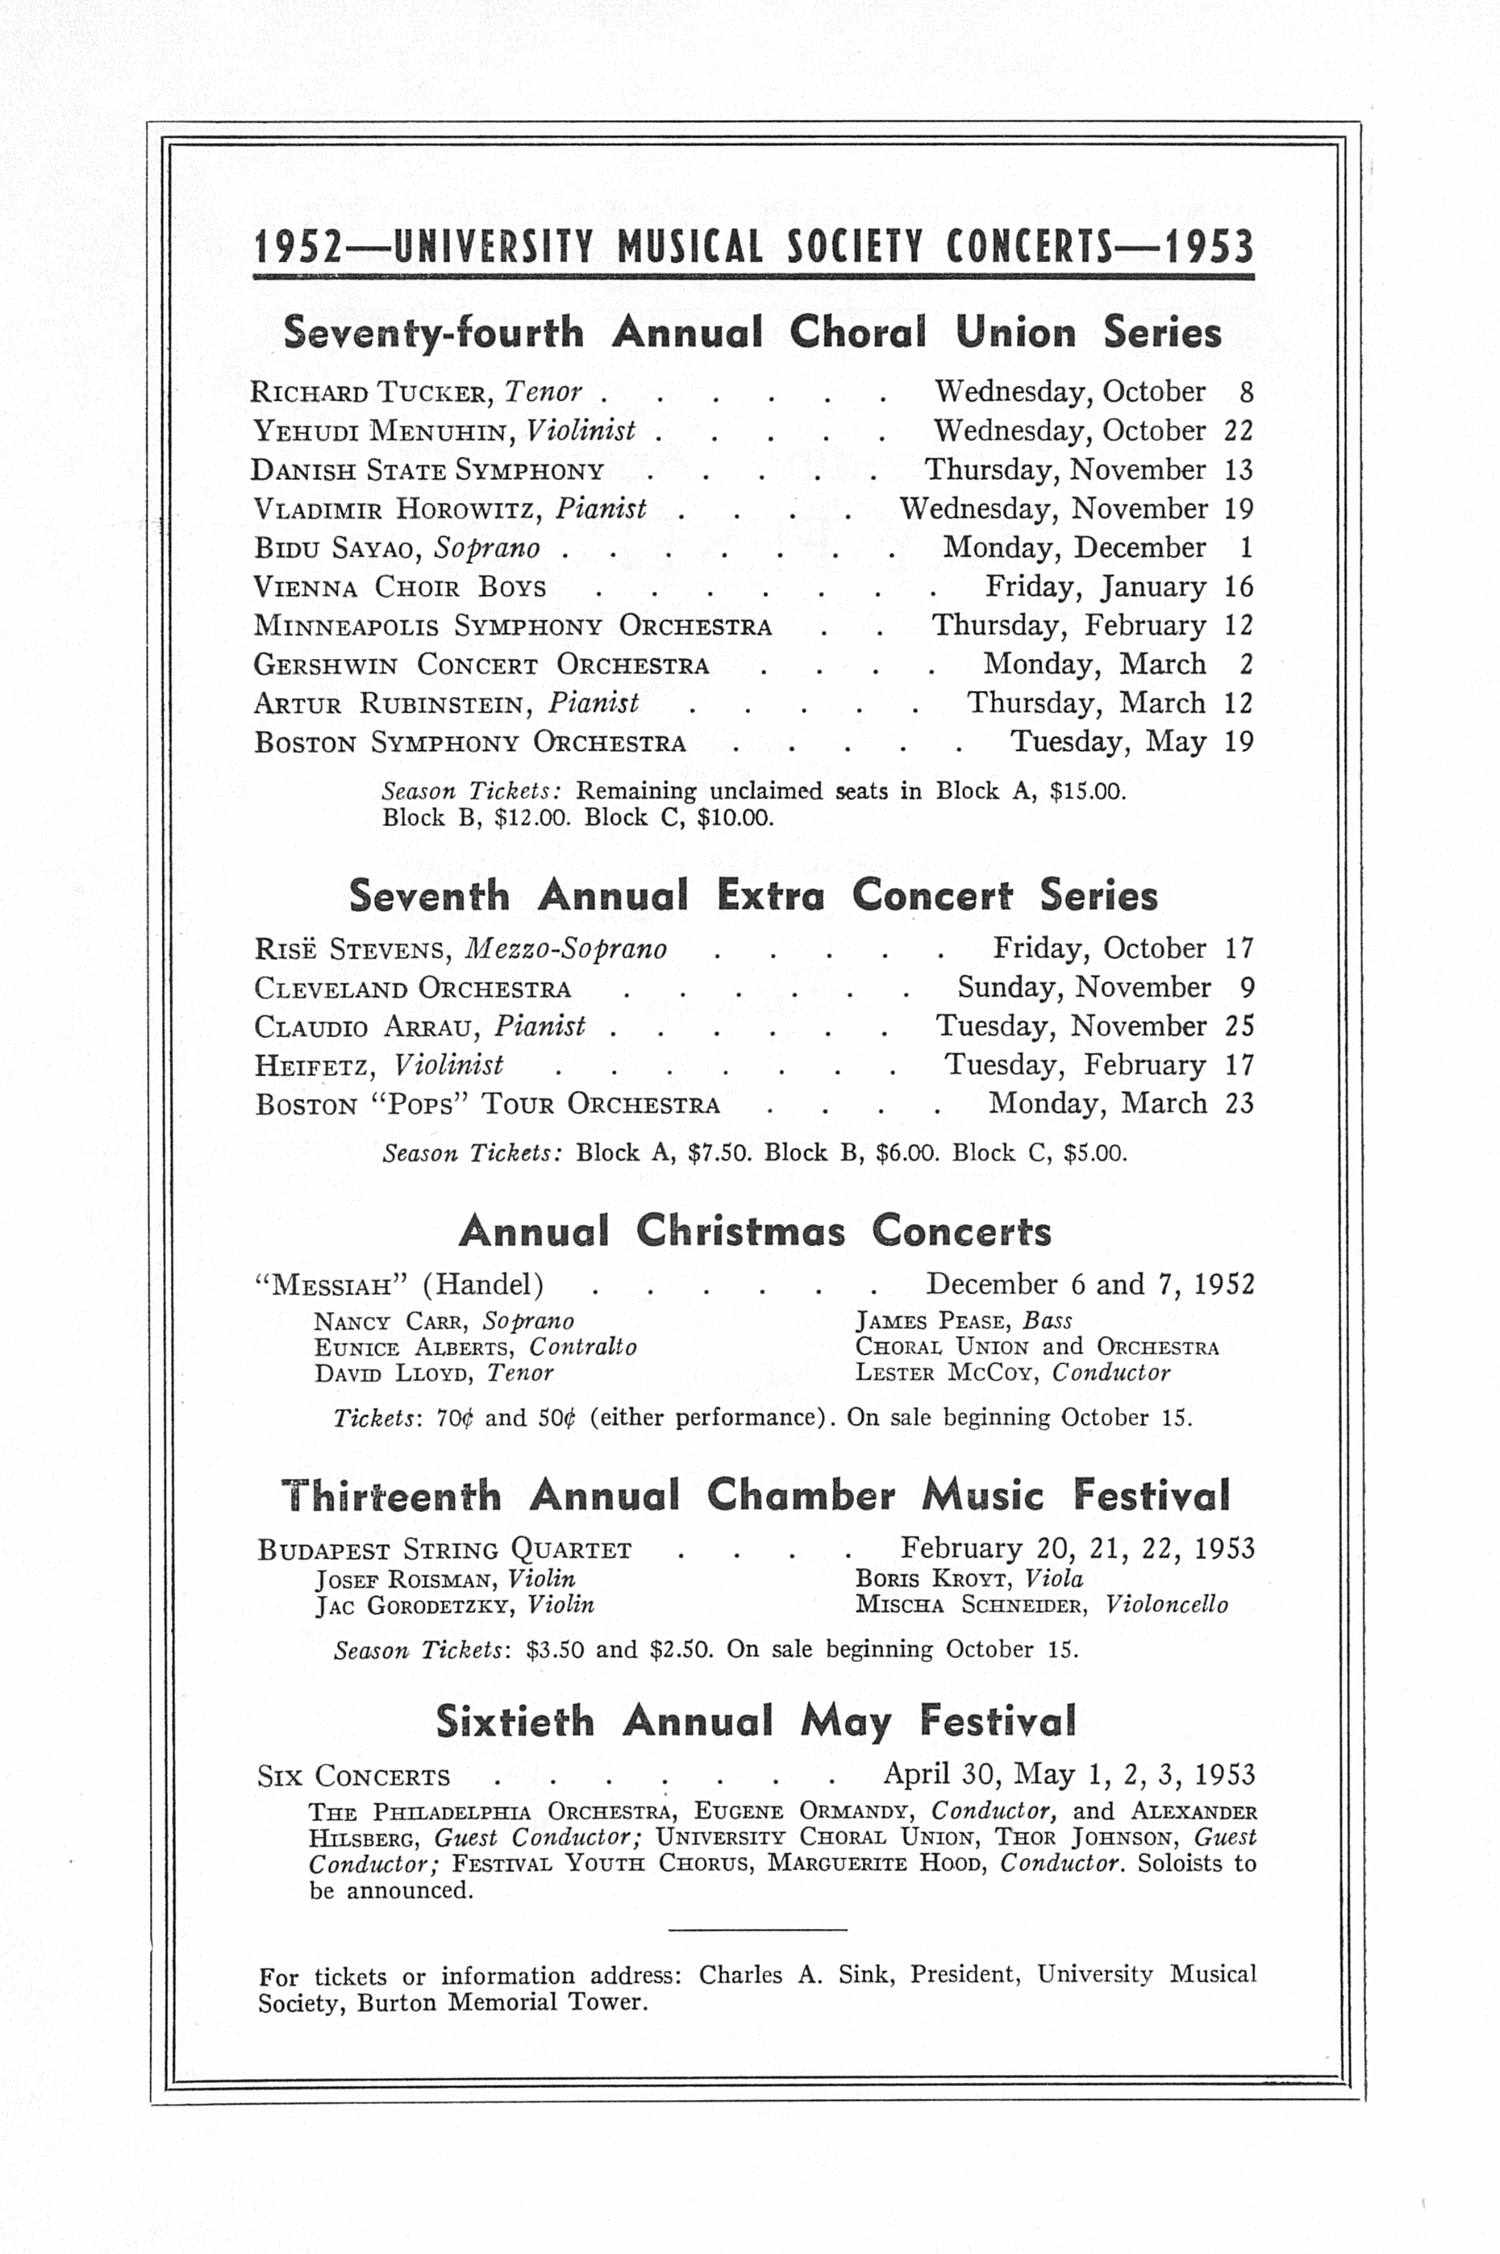 UMS Concert Program, May 4, 1952: Fifty-ninth Annual May Festival -- The Philadelphia Orchestra image